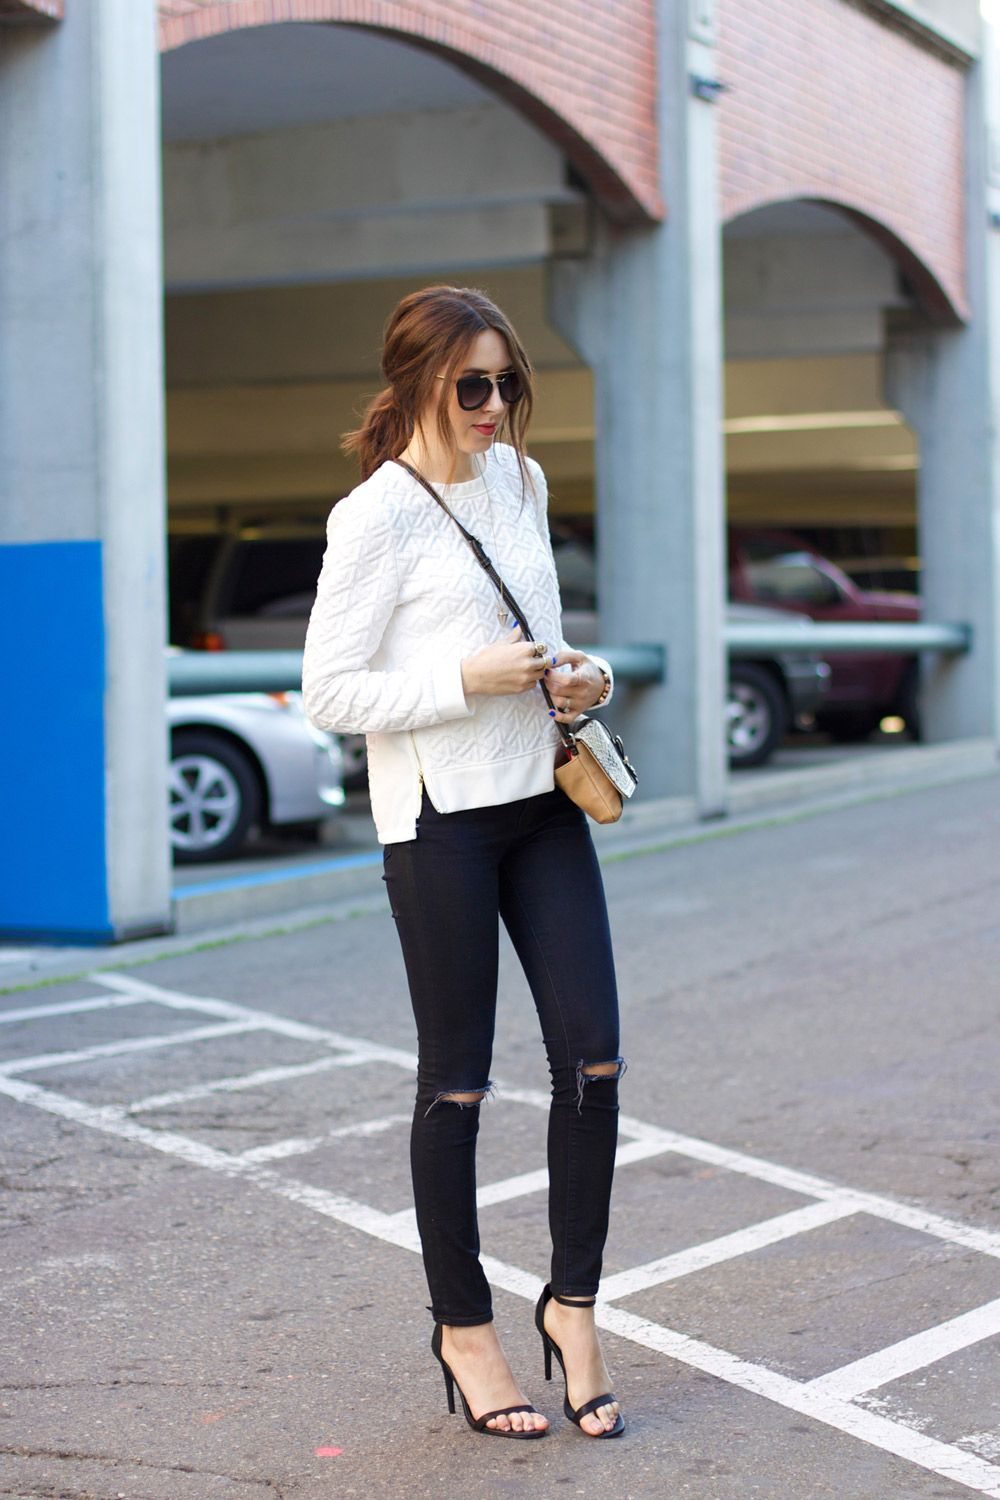 white-sweater-outfit | Jeans and Denim Looks | Pinterest ...